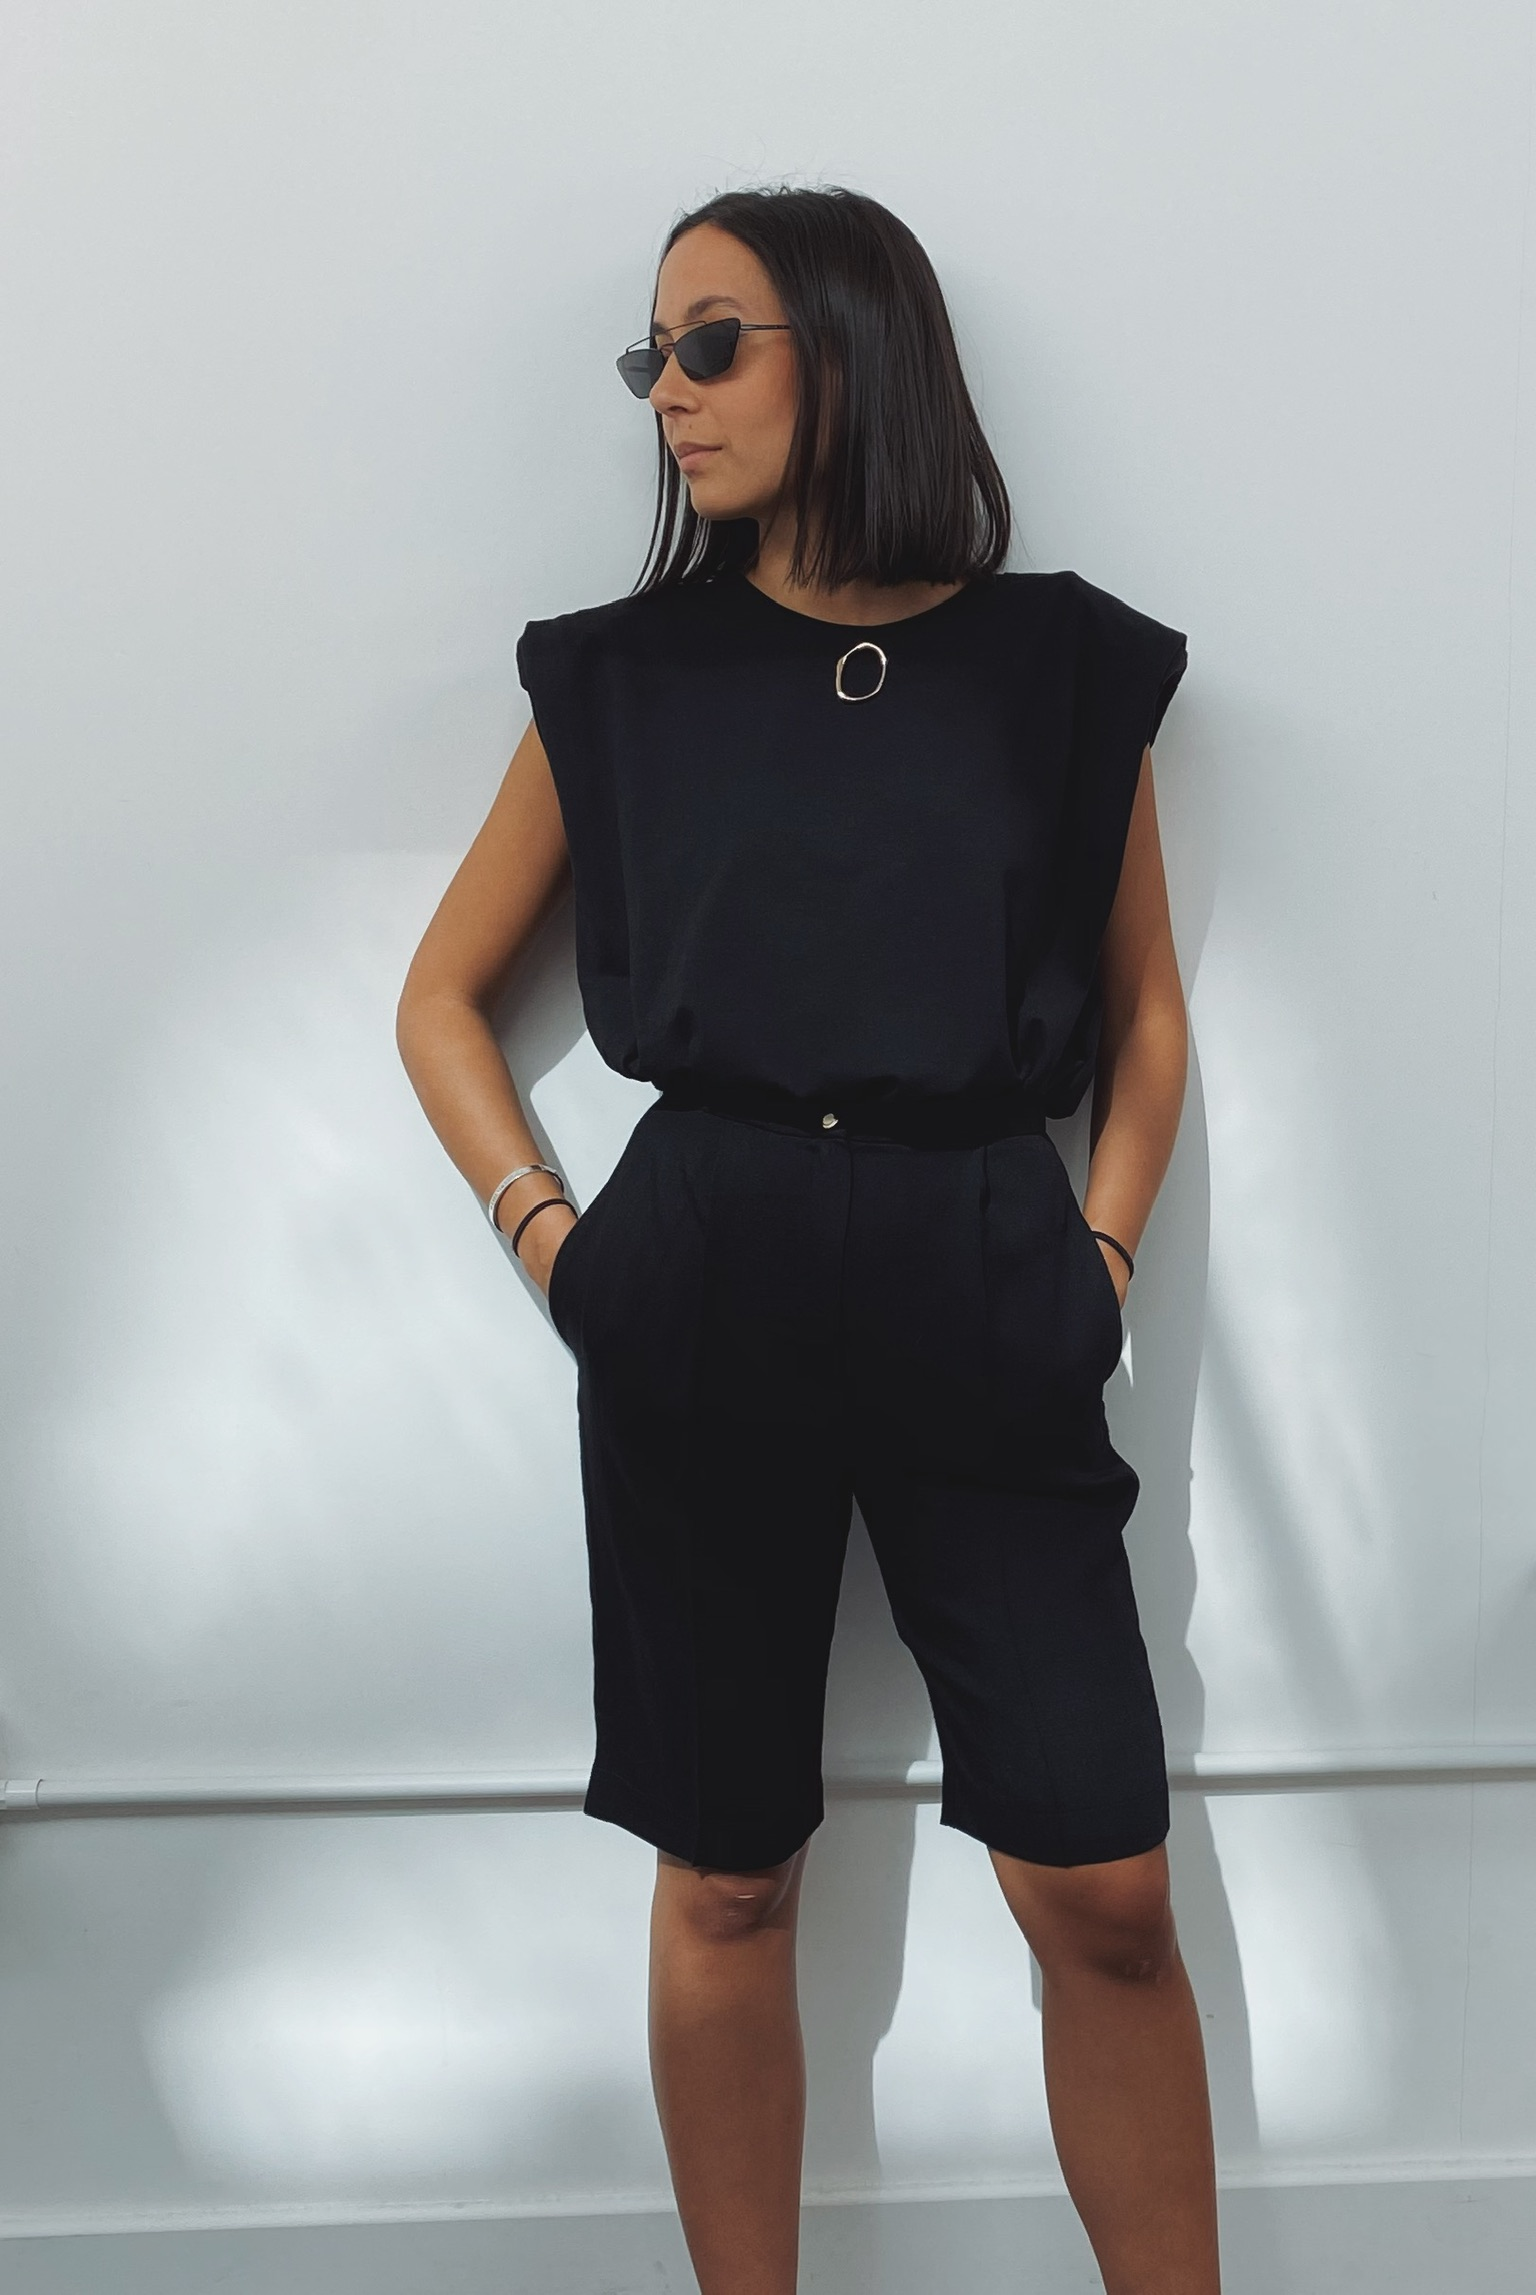 Billie 2.0 Top - Padded by Manurí on curated-crowd.com